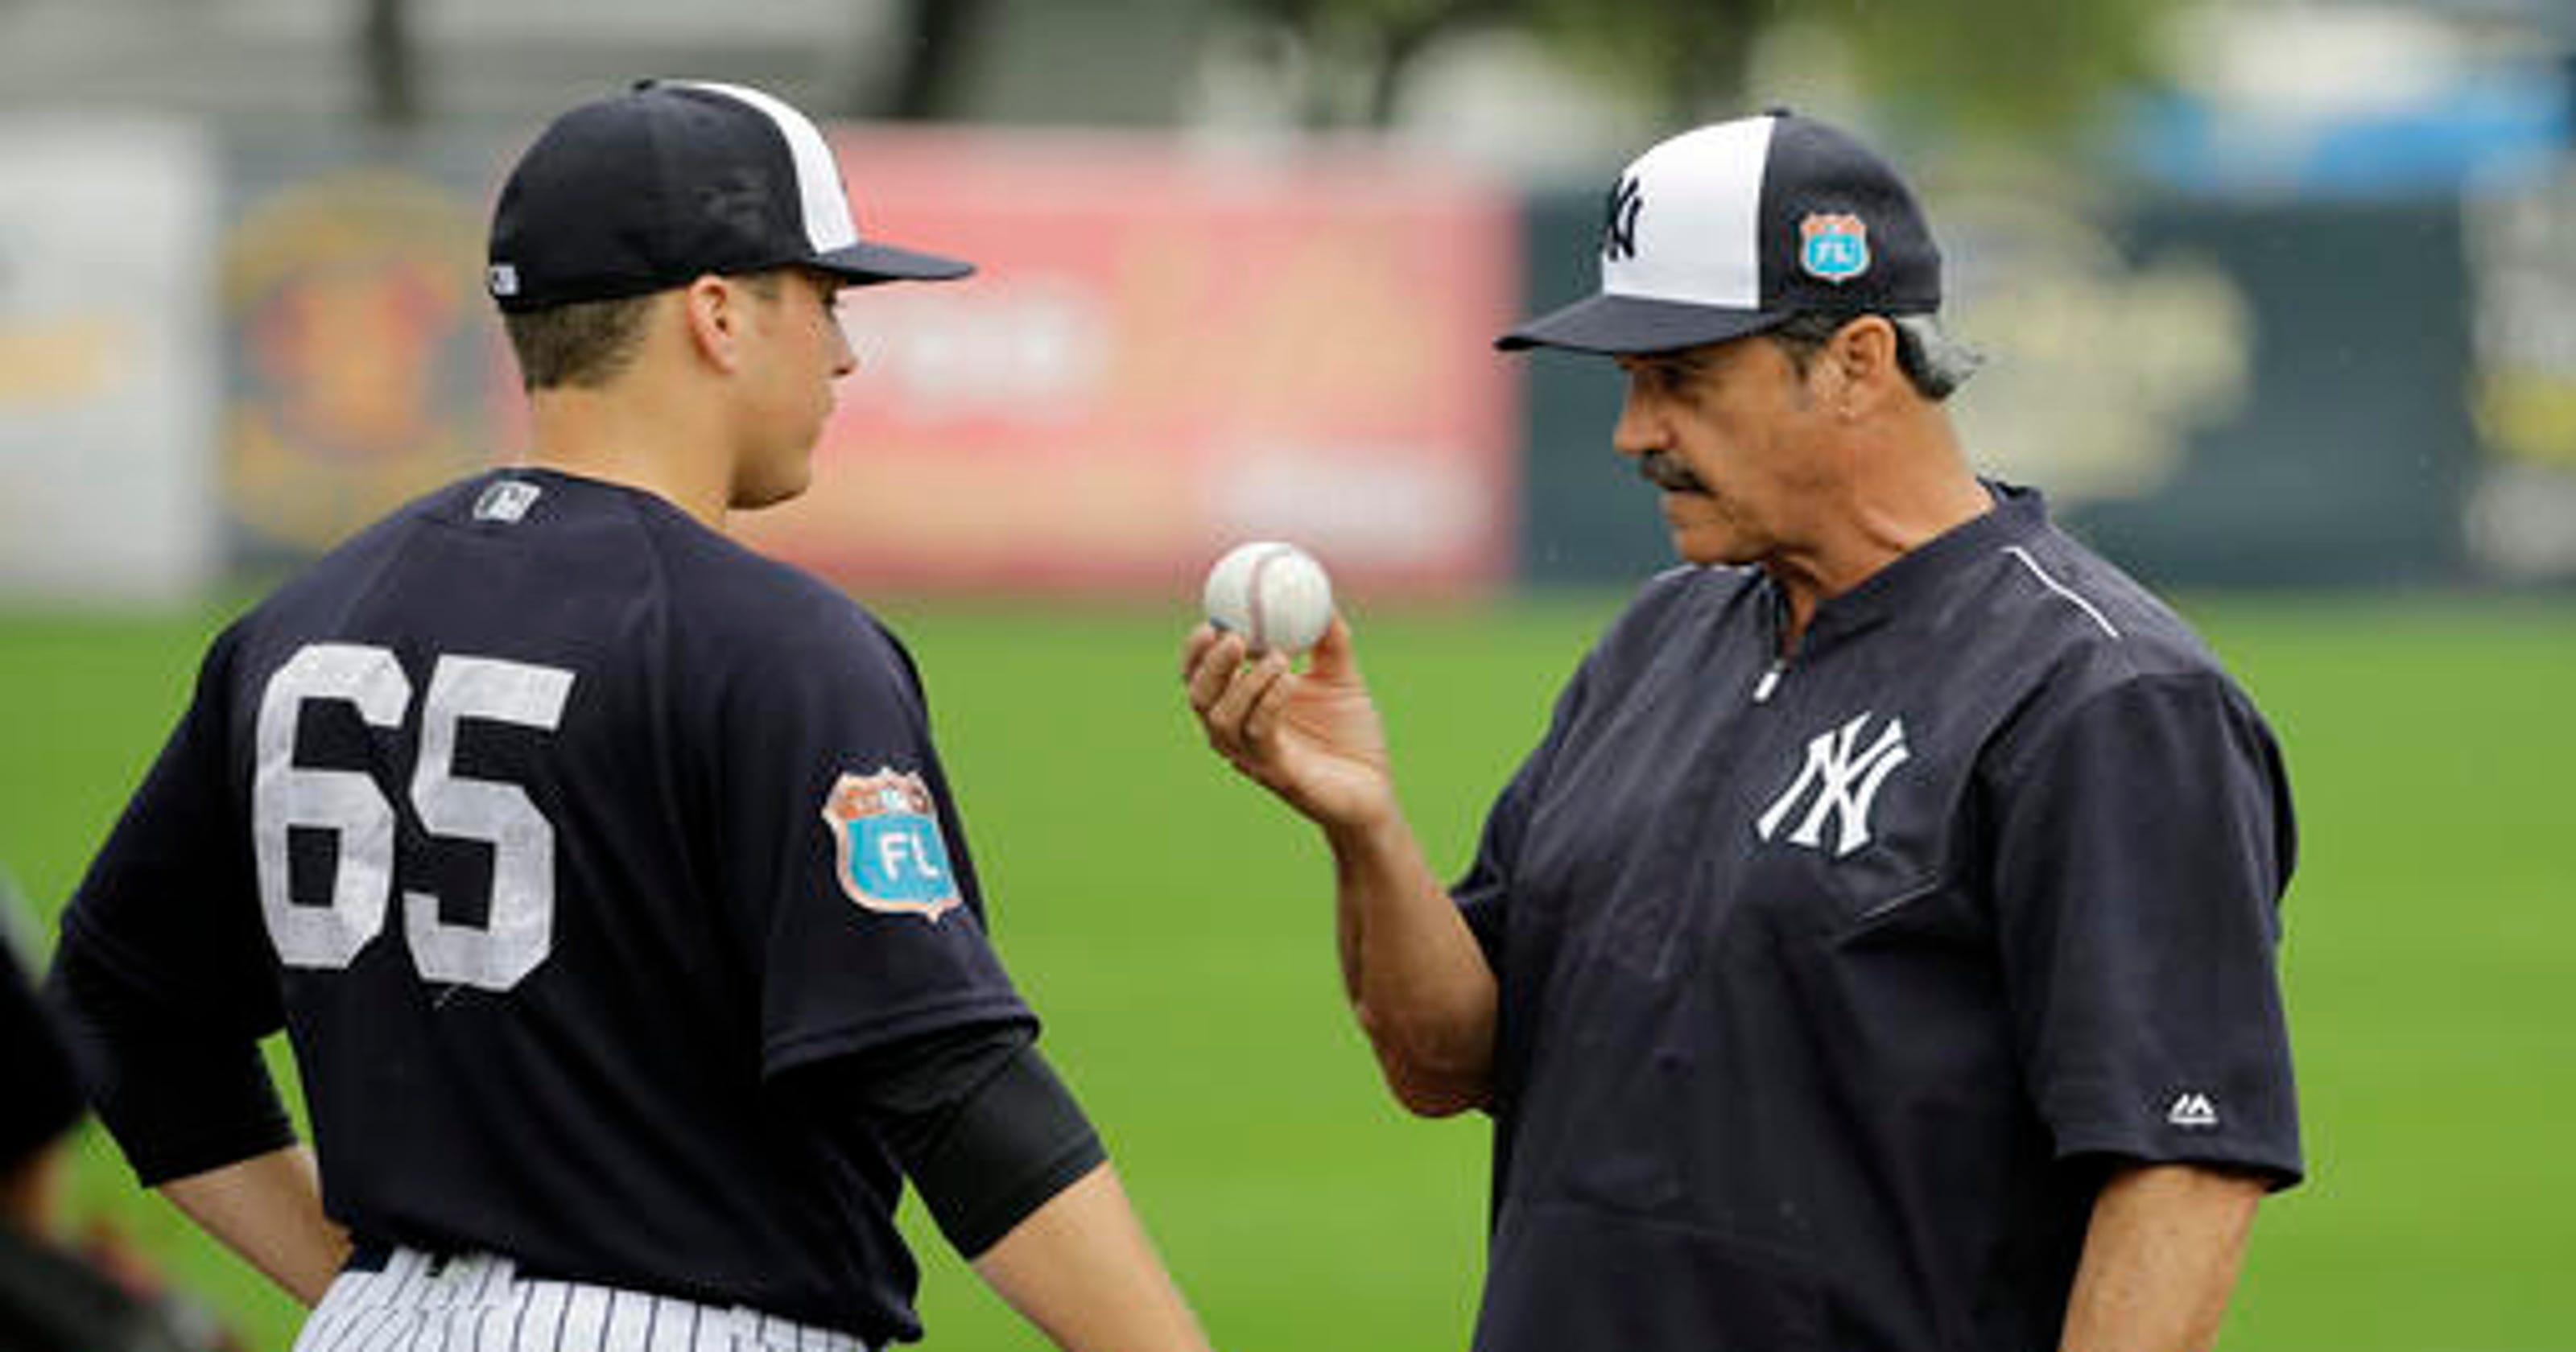 Things To Do In Westchester Today >> 40 years later, Ron Guidry recalls Yankees magic 1978 season